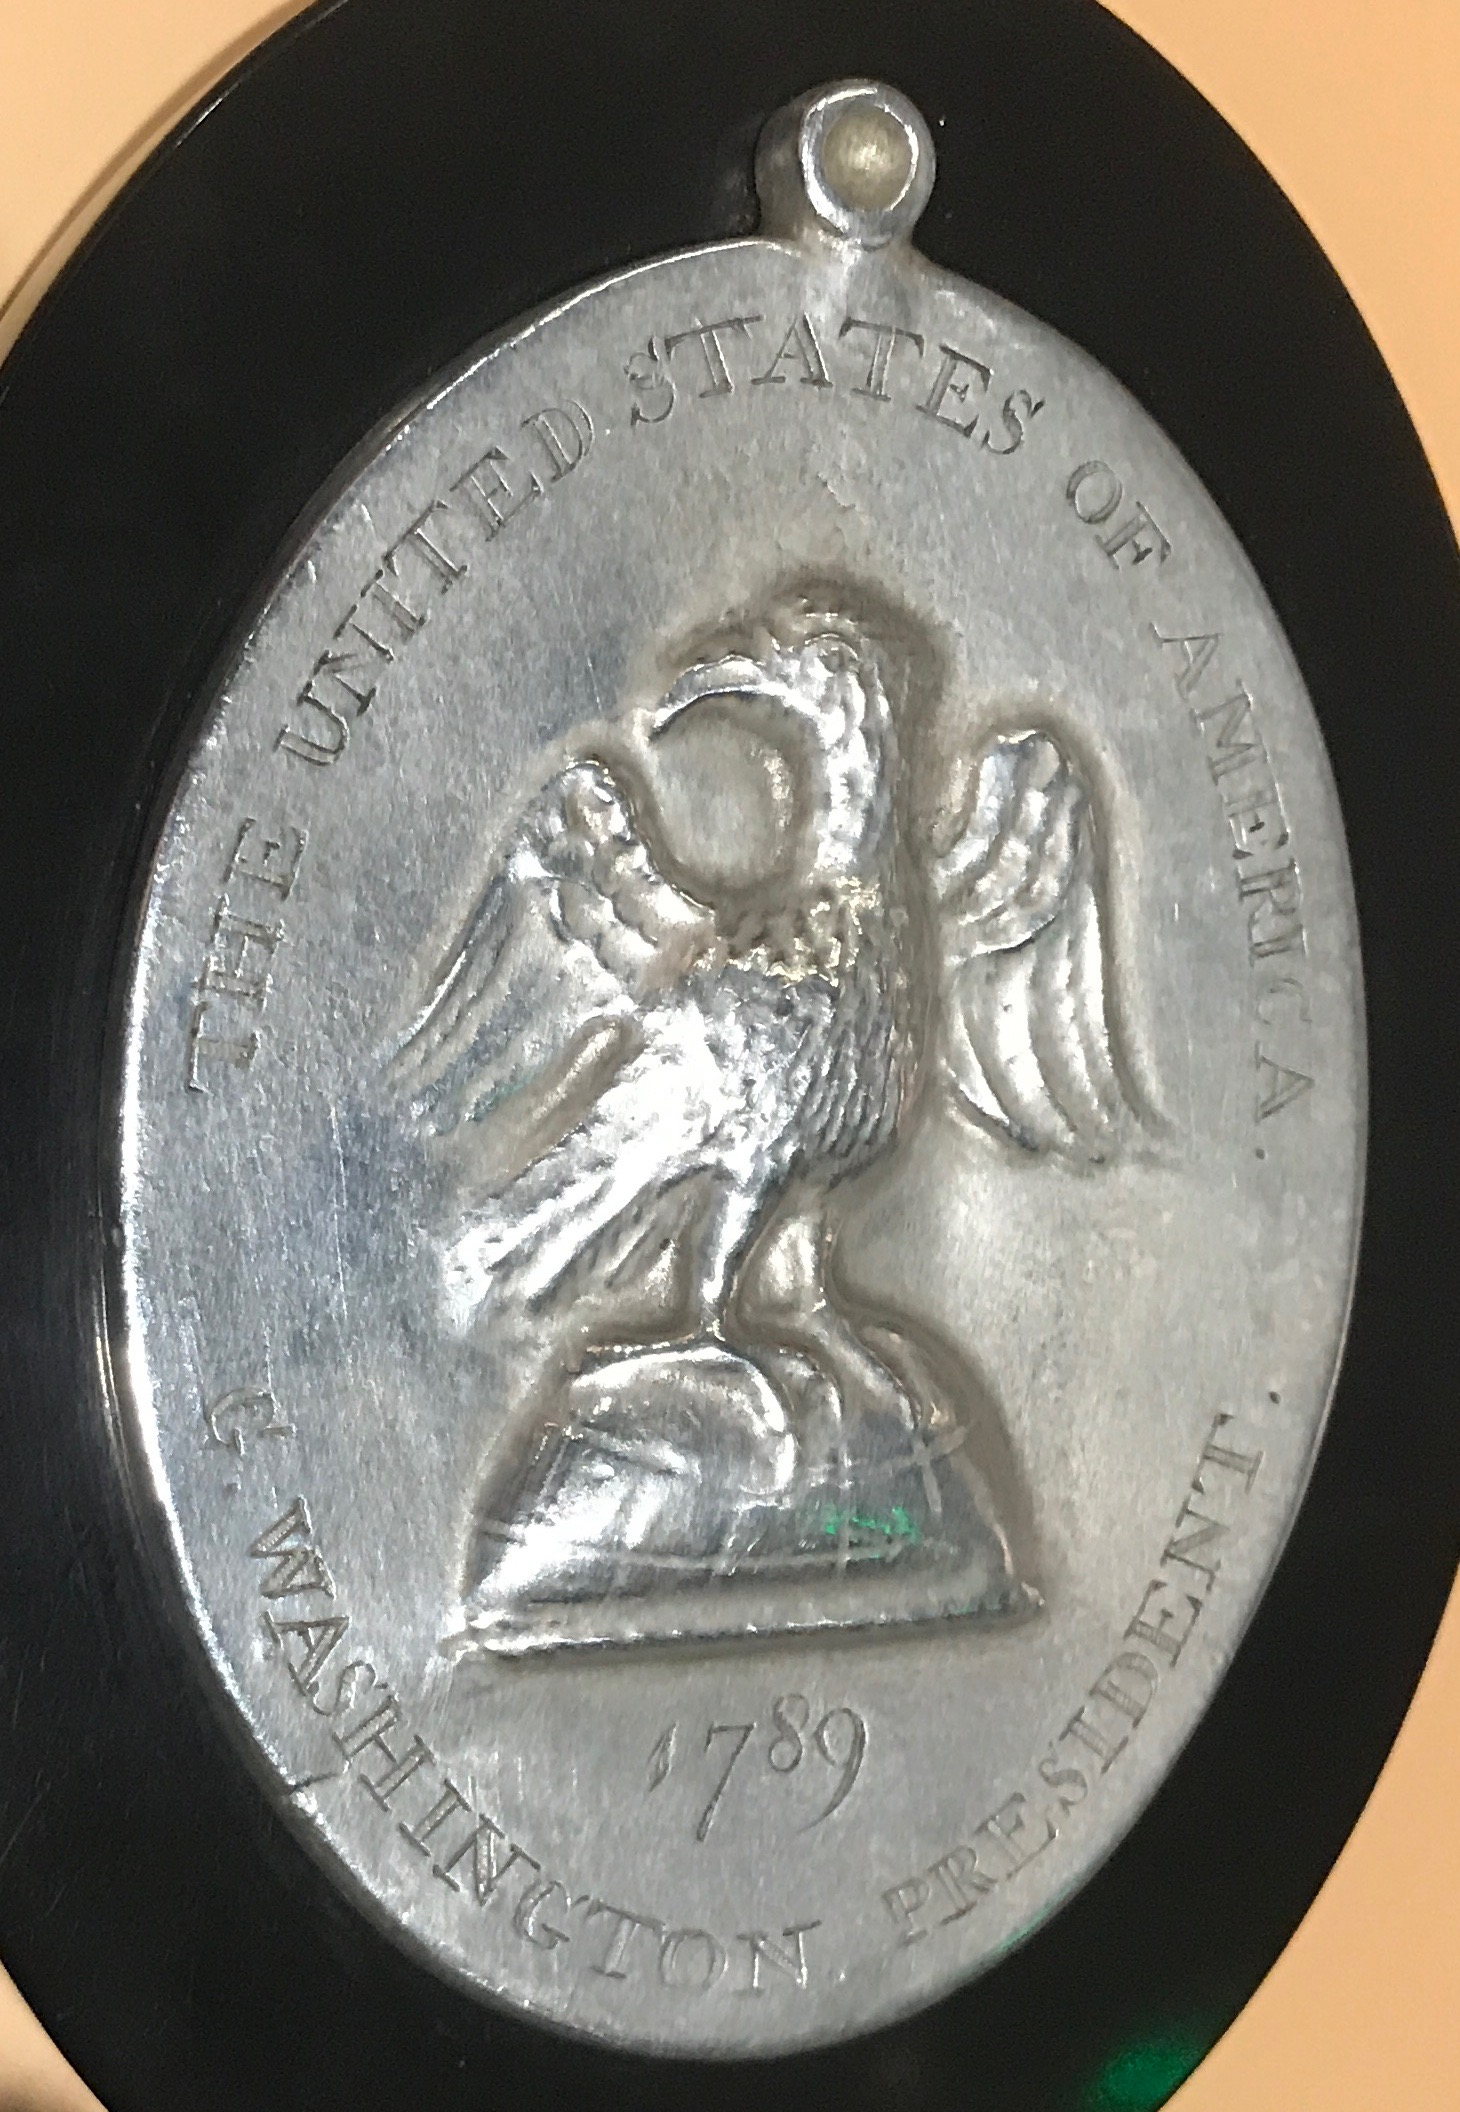 A medal given to the Creek Indians for negotiating a treaty with George Washington, found in 1929 near the Tallapoosa River, is on display at the Museum of Alabama in Montgomery.